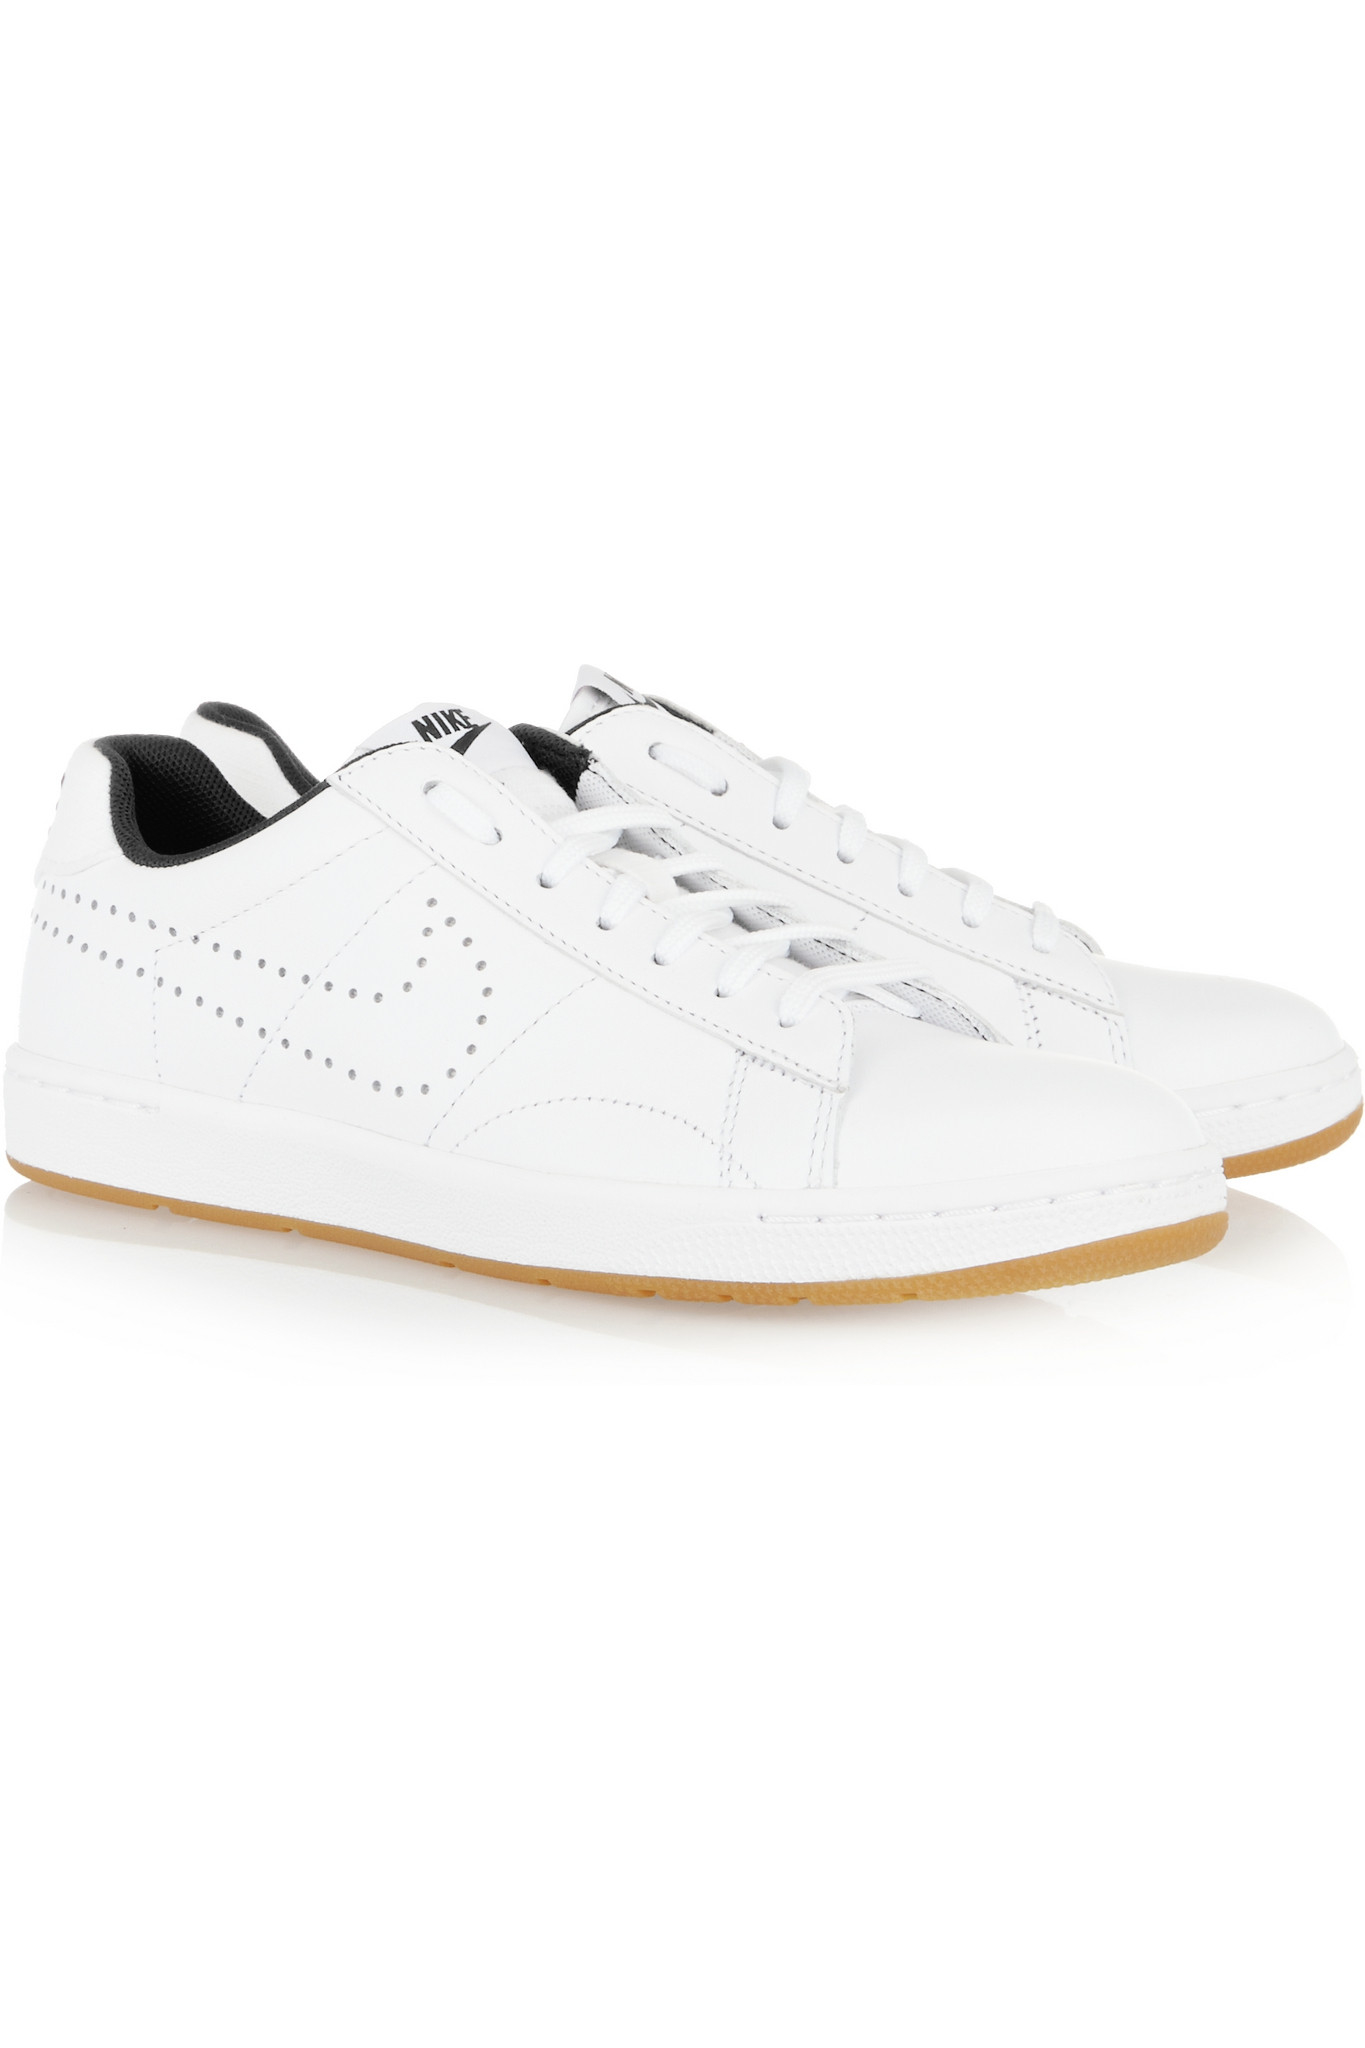 Nike Tennis Classic Ultra Perforated Leather Sneakers In